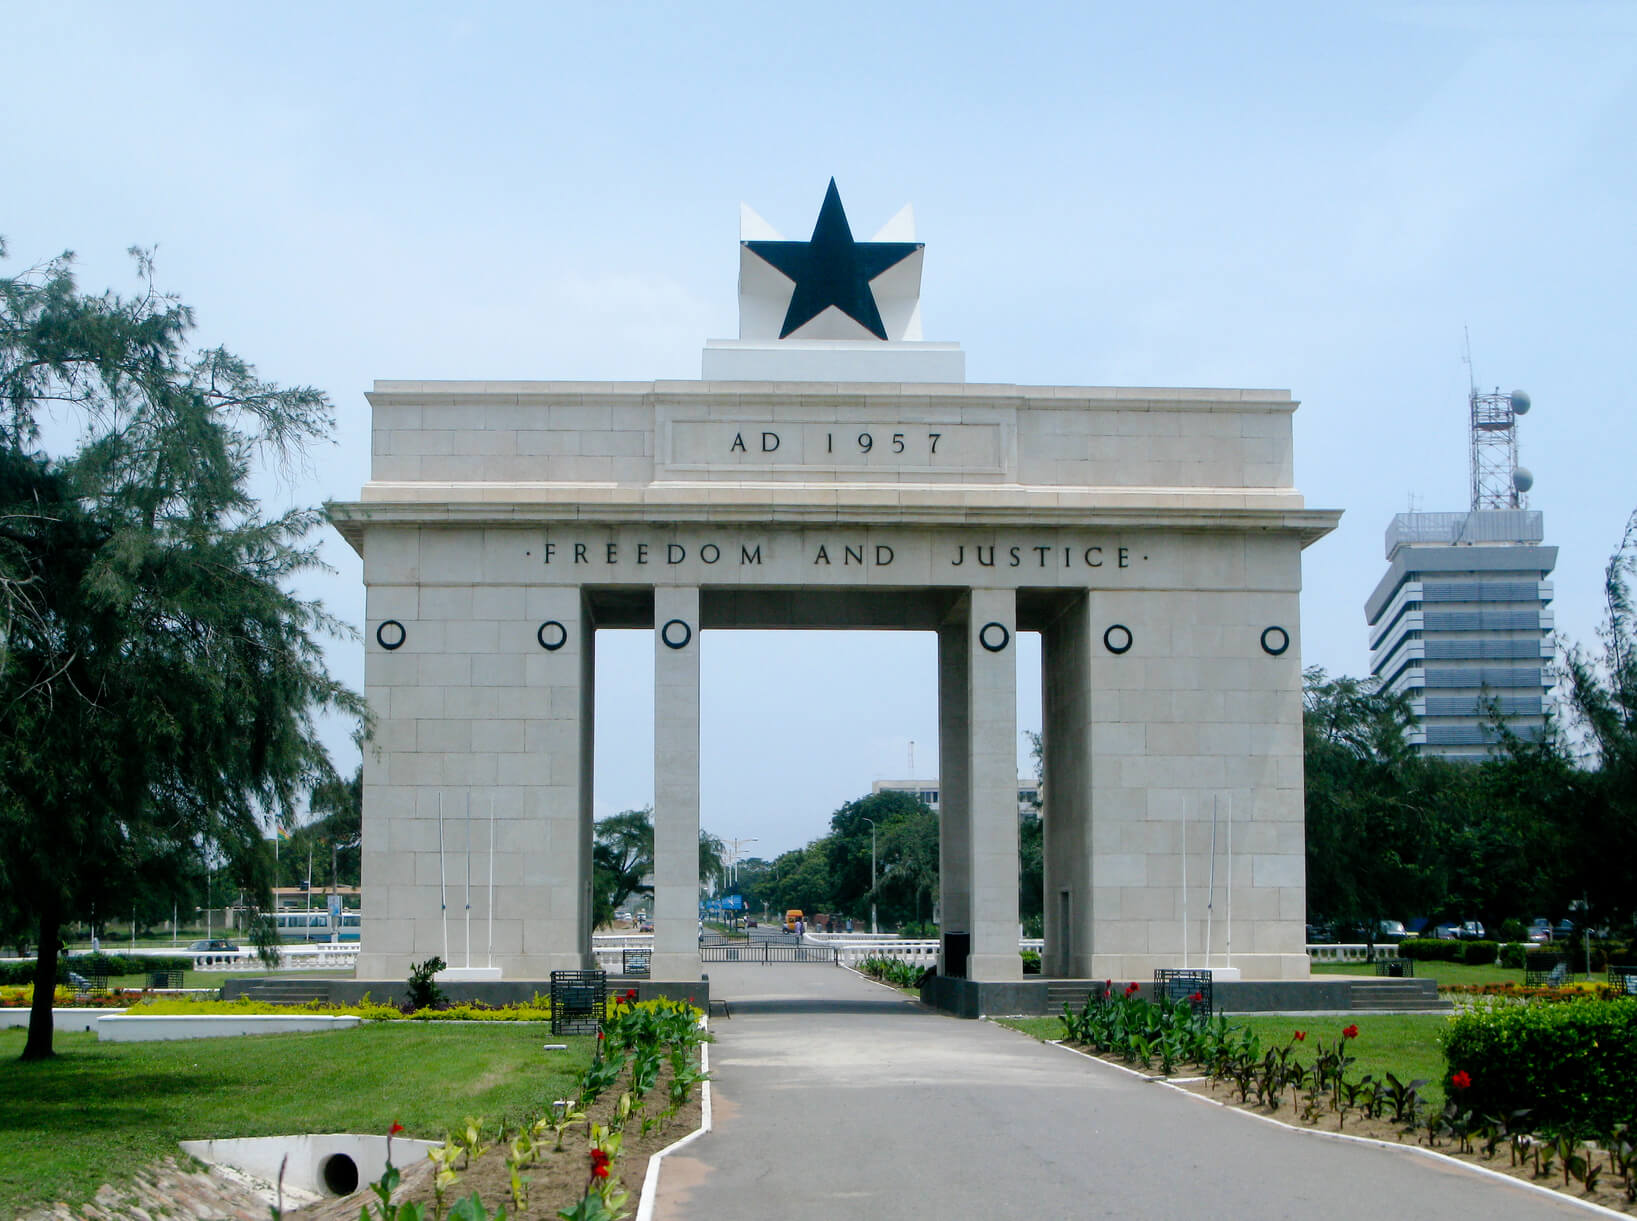 Cologne, Germany to Accra, Ghana for only €297 roundtrip